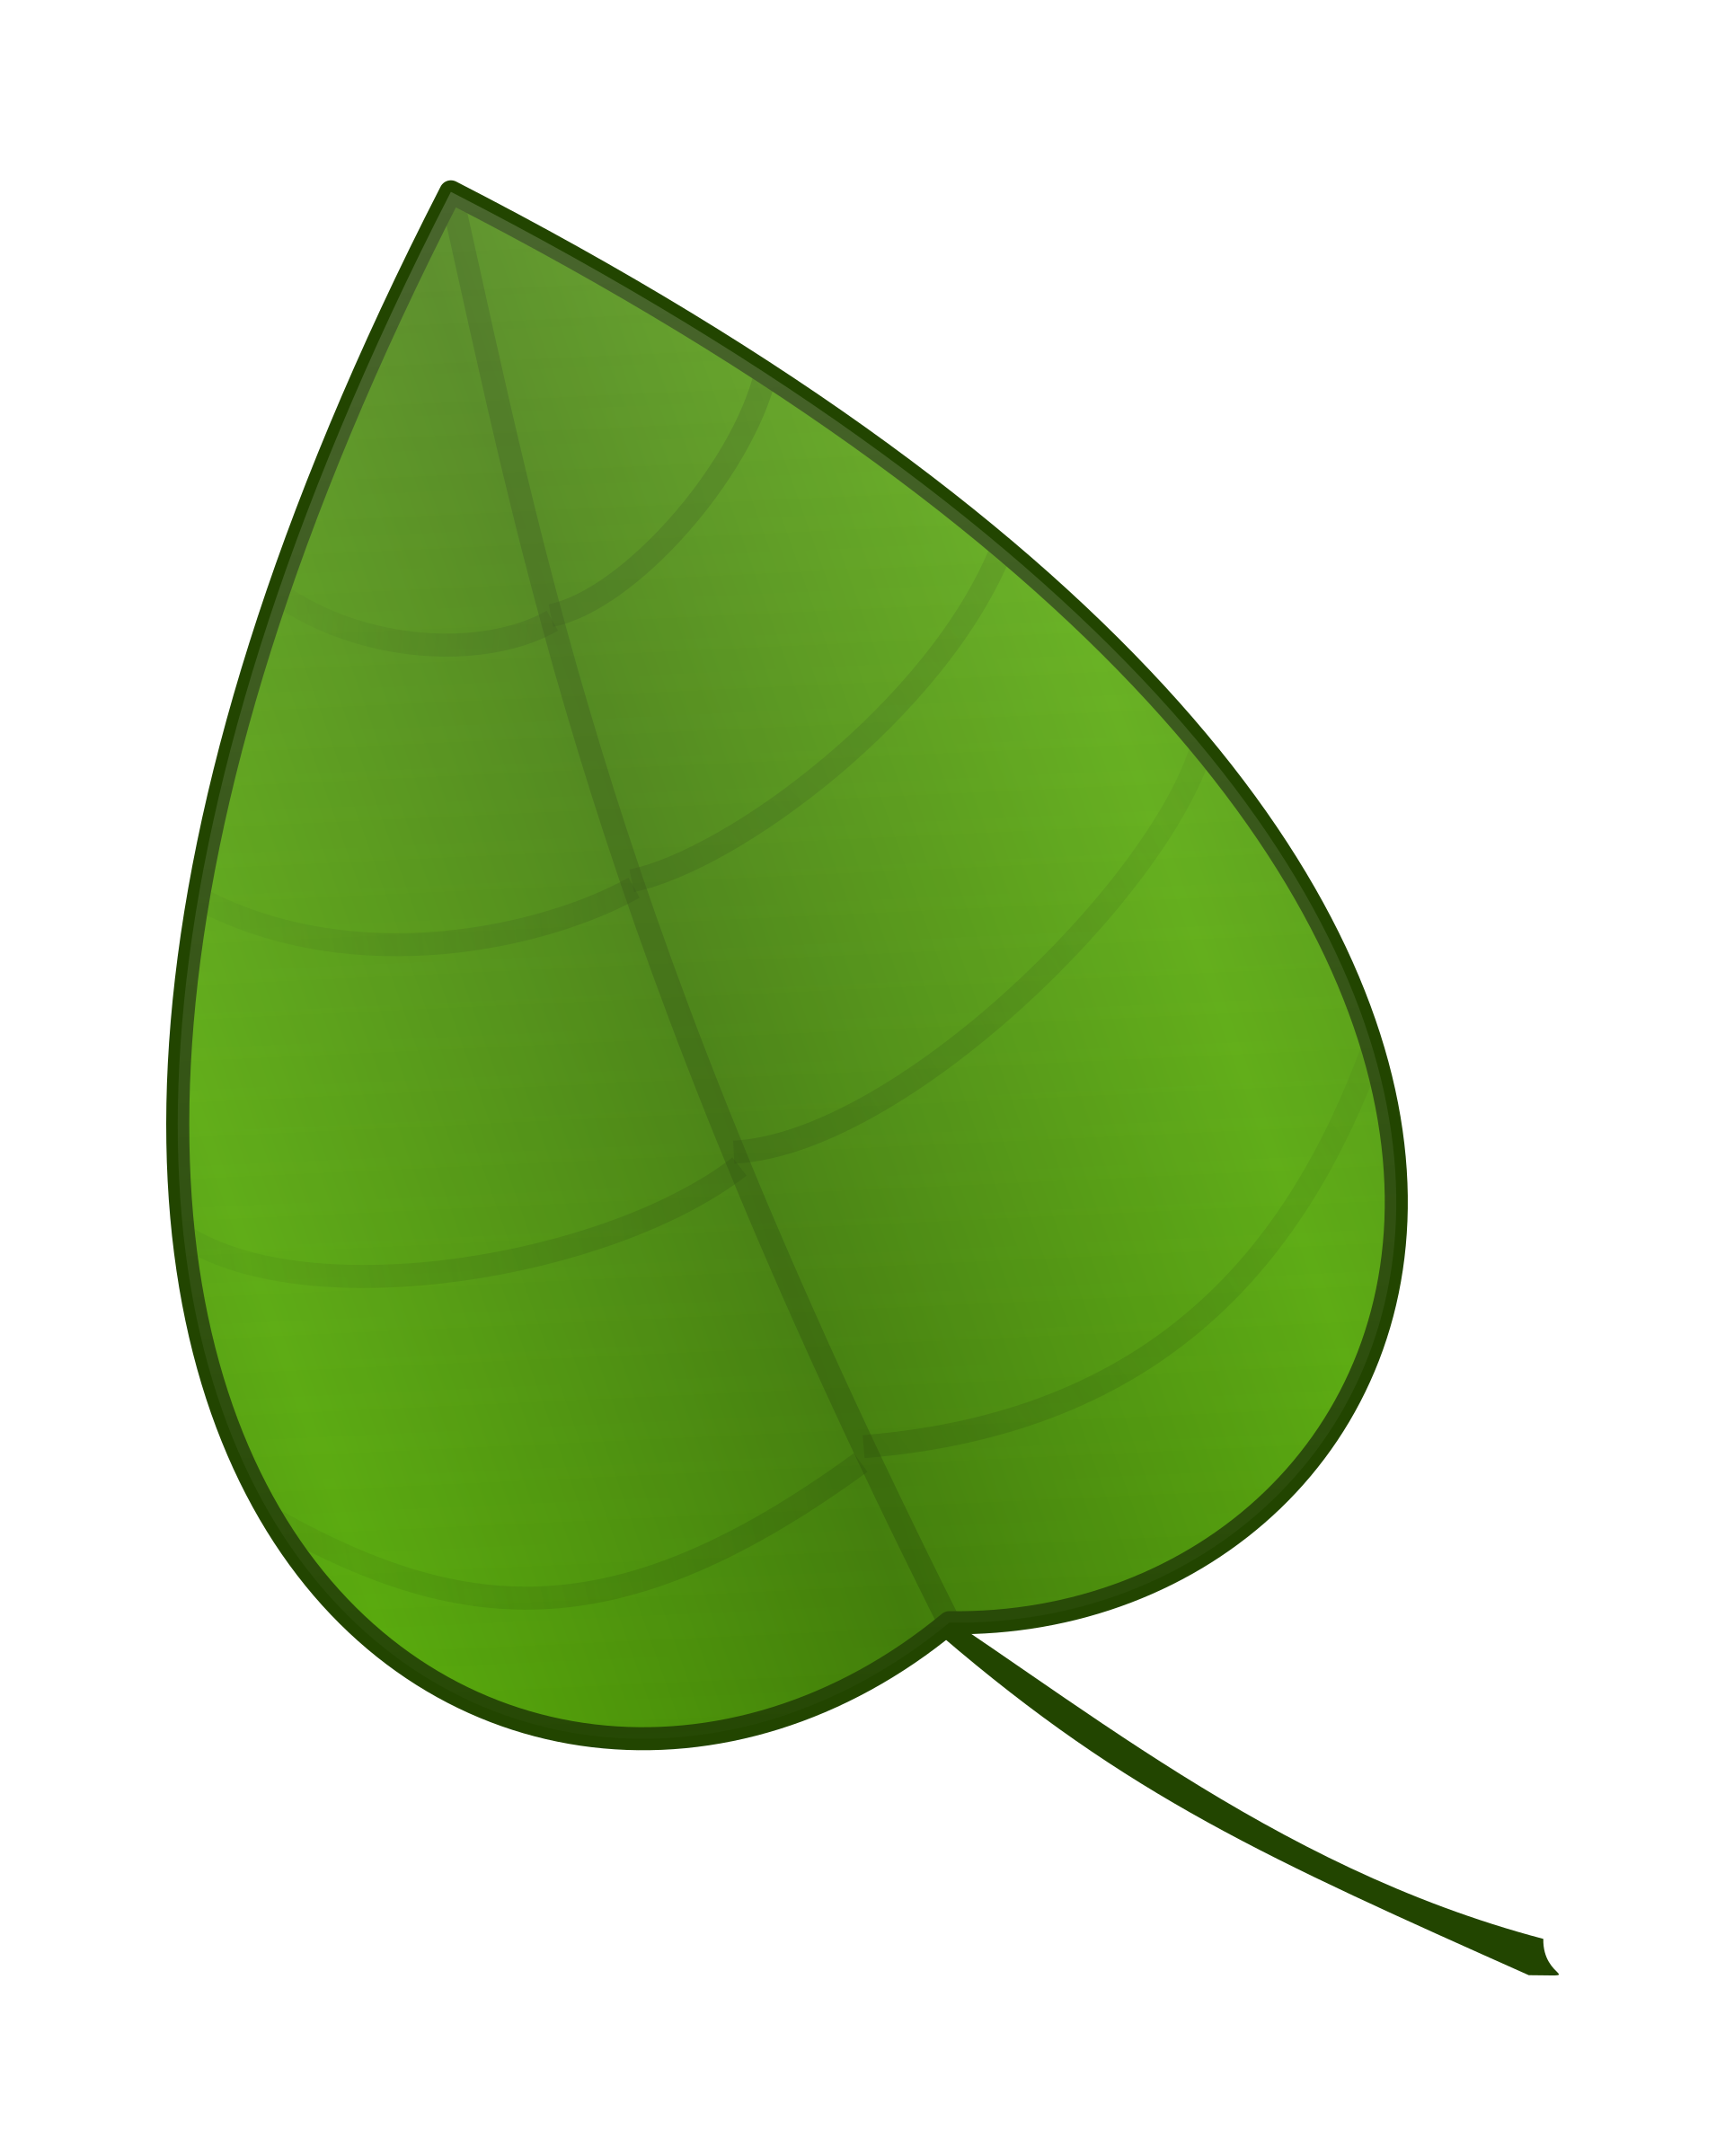 Leaf by carlitos